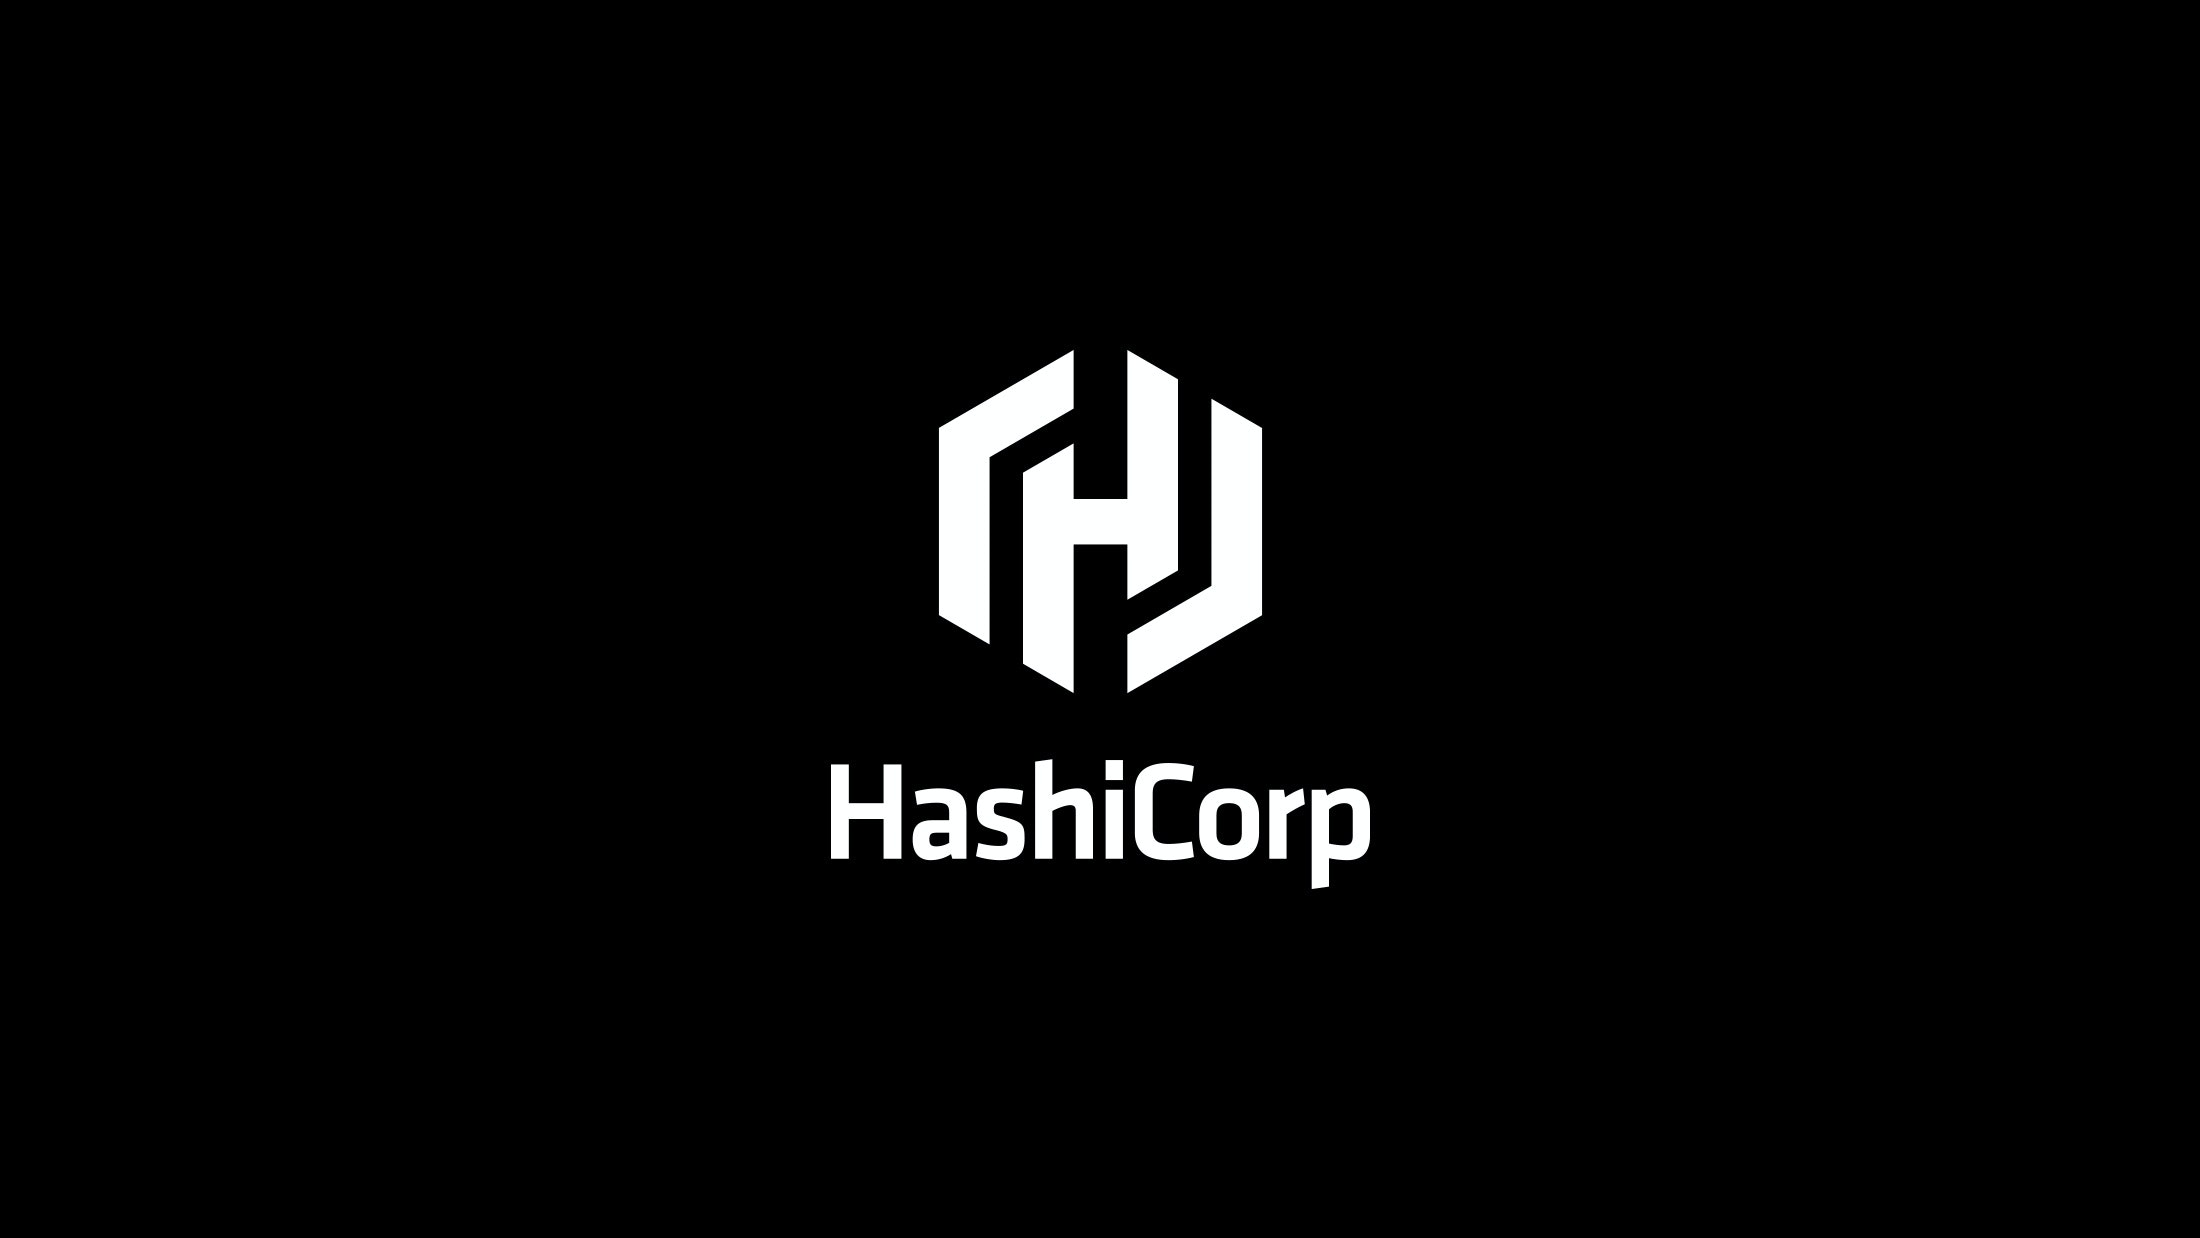 HashiCorp Executive Summit: Financial Services Image